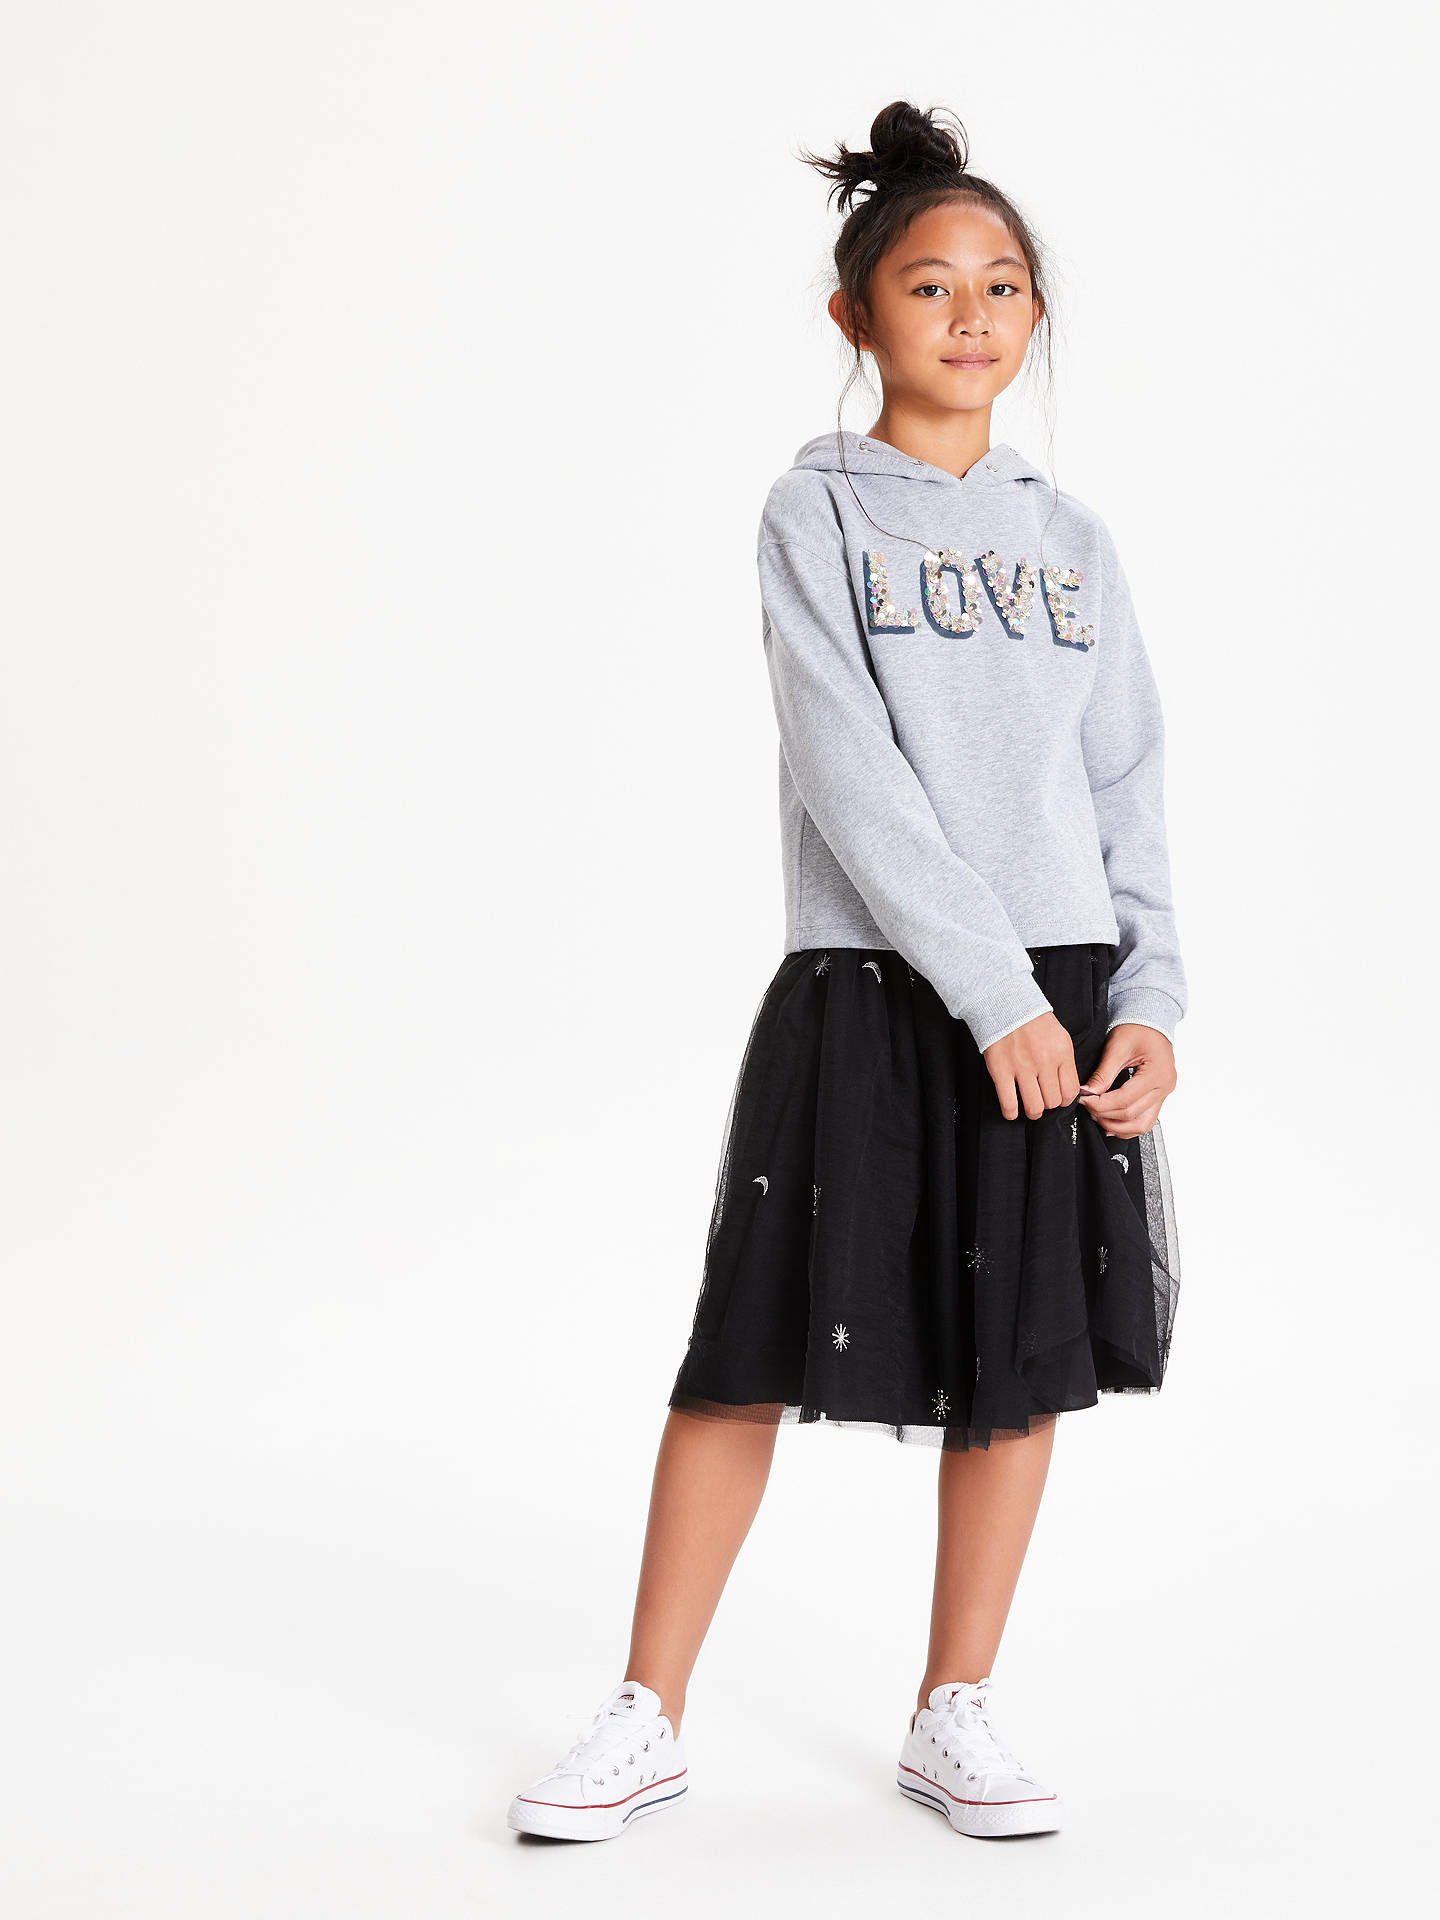 BuyJohn Lewis & Partners Girls' Sequin Hooded Sweatshirt, Grey Marl, 8 years Online at johnlewis.com